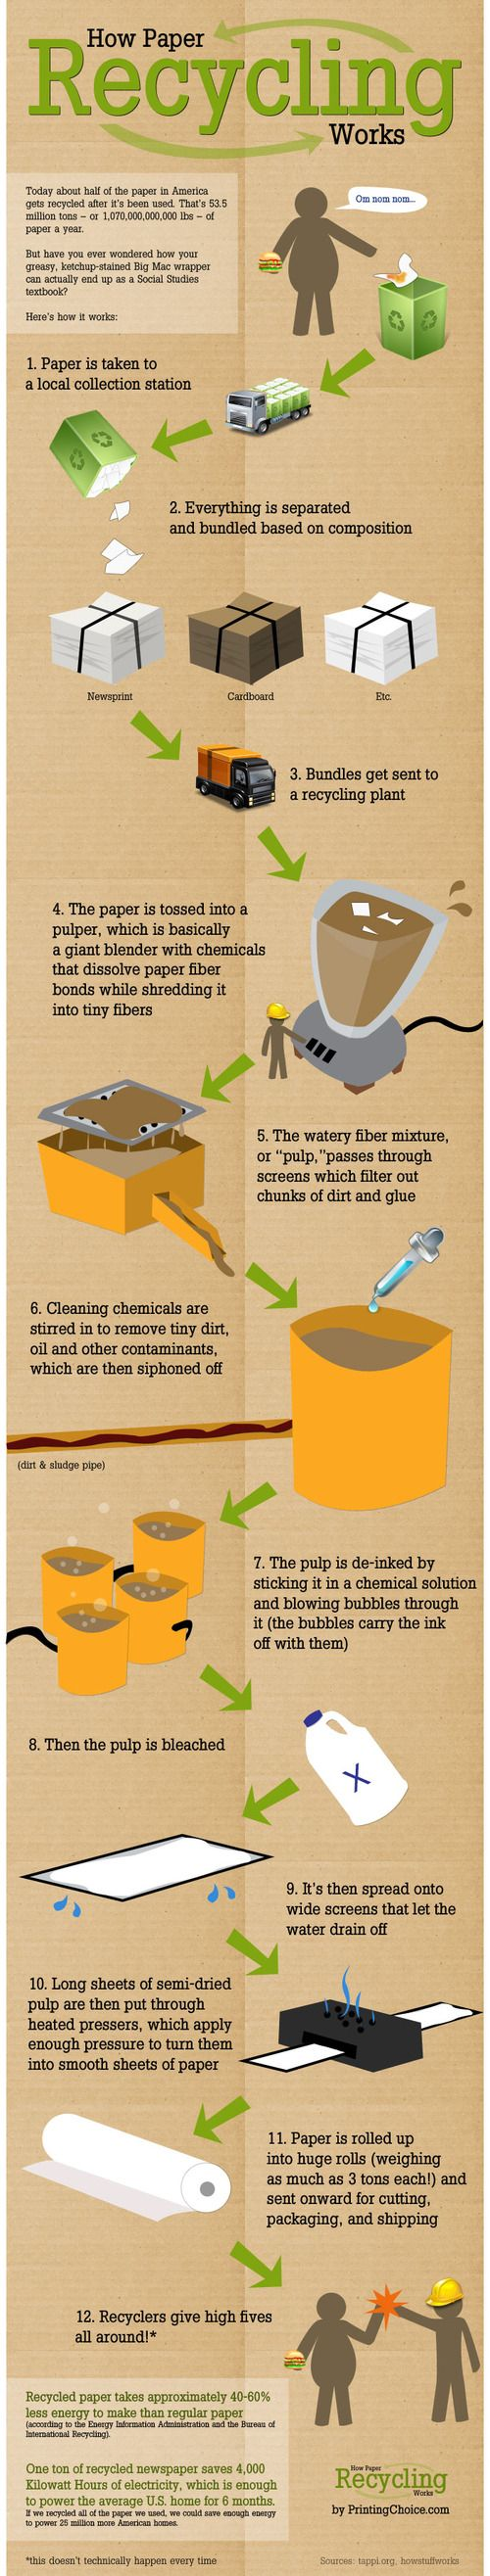 How to Recycle Paper - Earth911.com. Earth911 has an amazing database of recycling locations. I use it all the time to find places to recycle things like paper. This recycling infographic about paper recycling is really interesting.